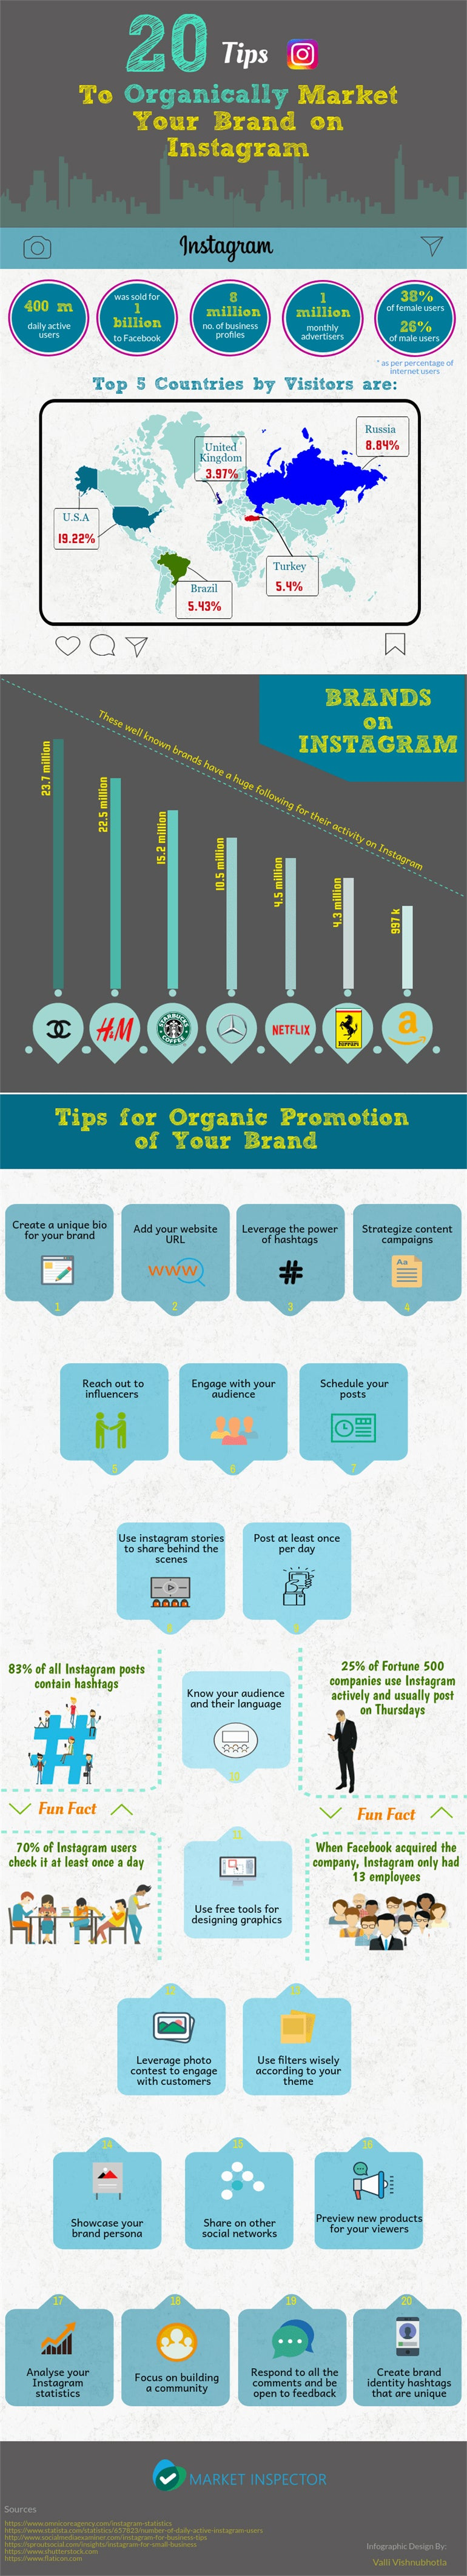 20 Tips to Organically Market Your Brand on Instagram (Infographic)